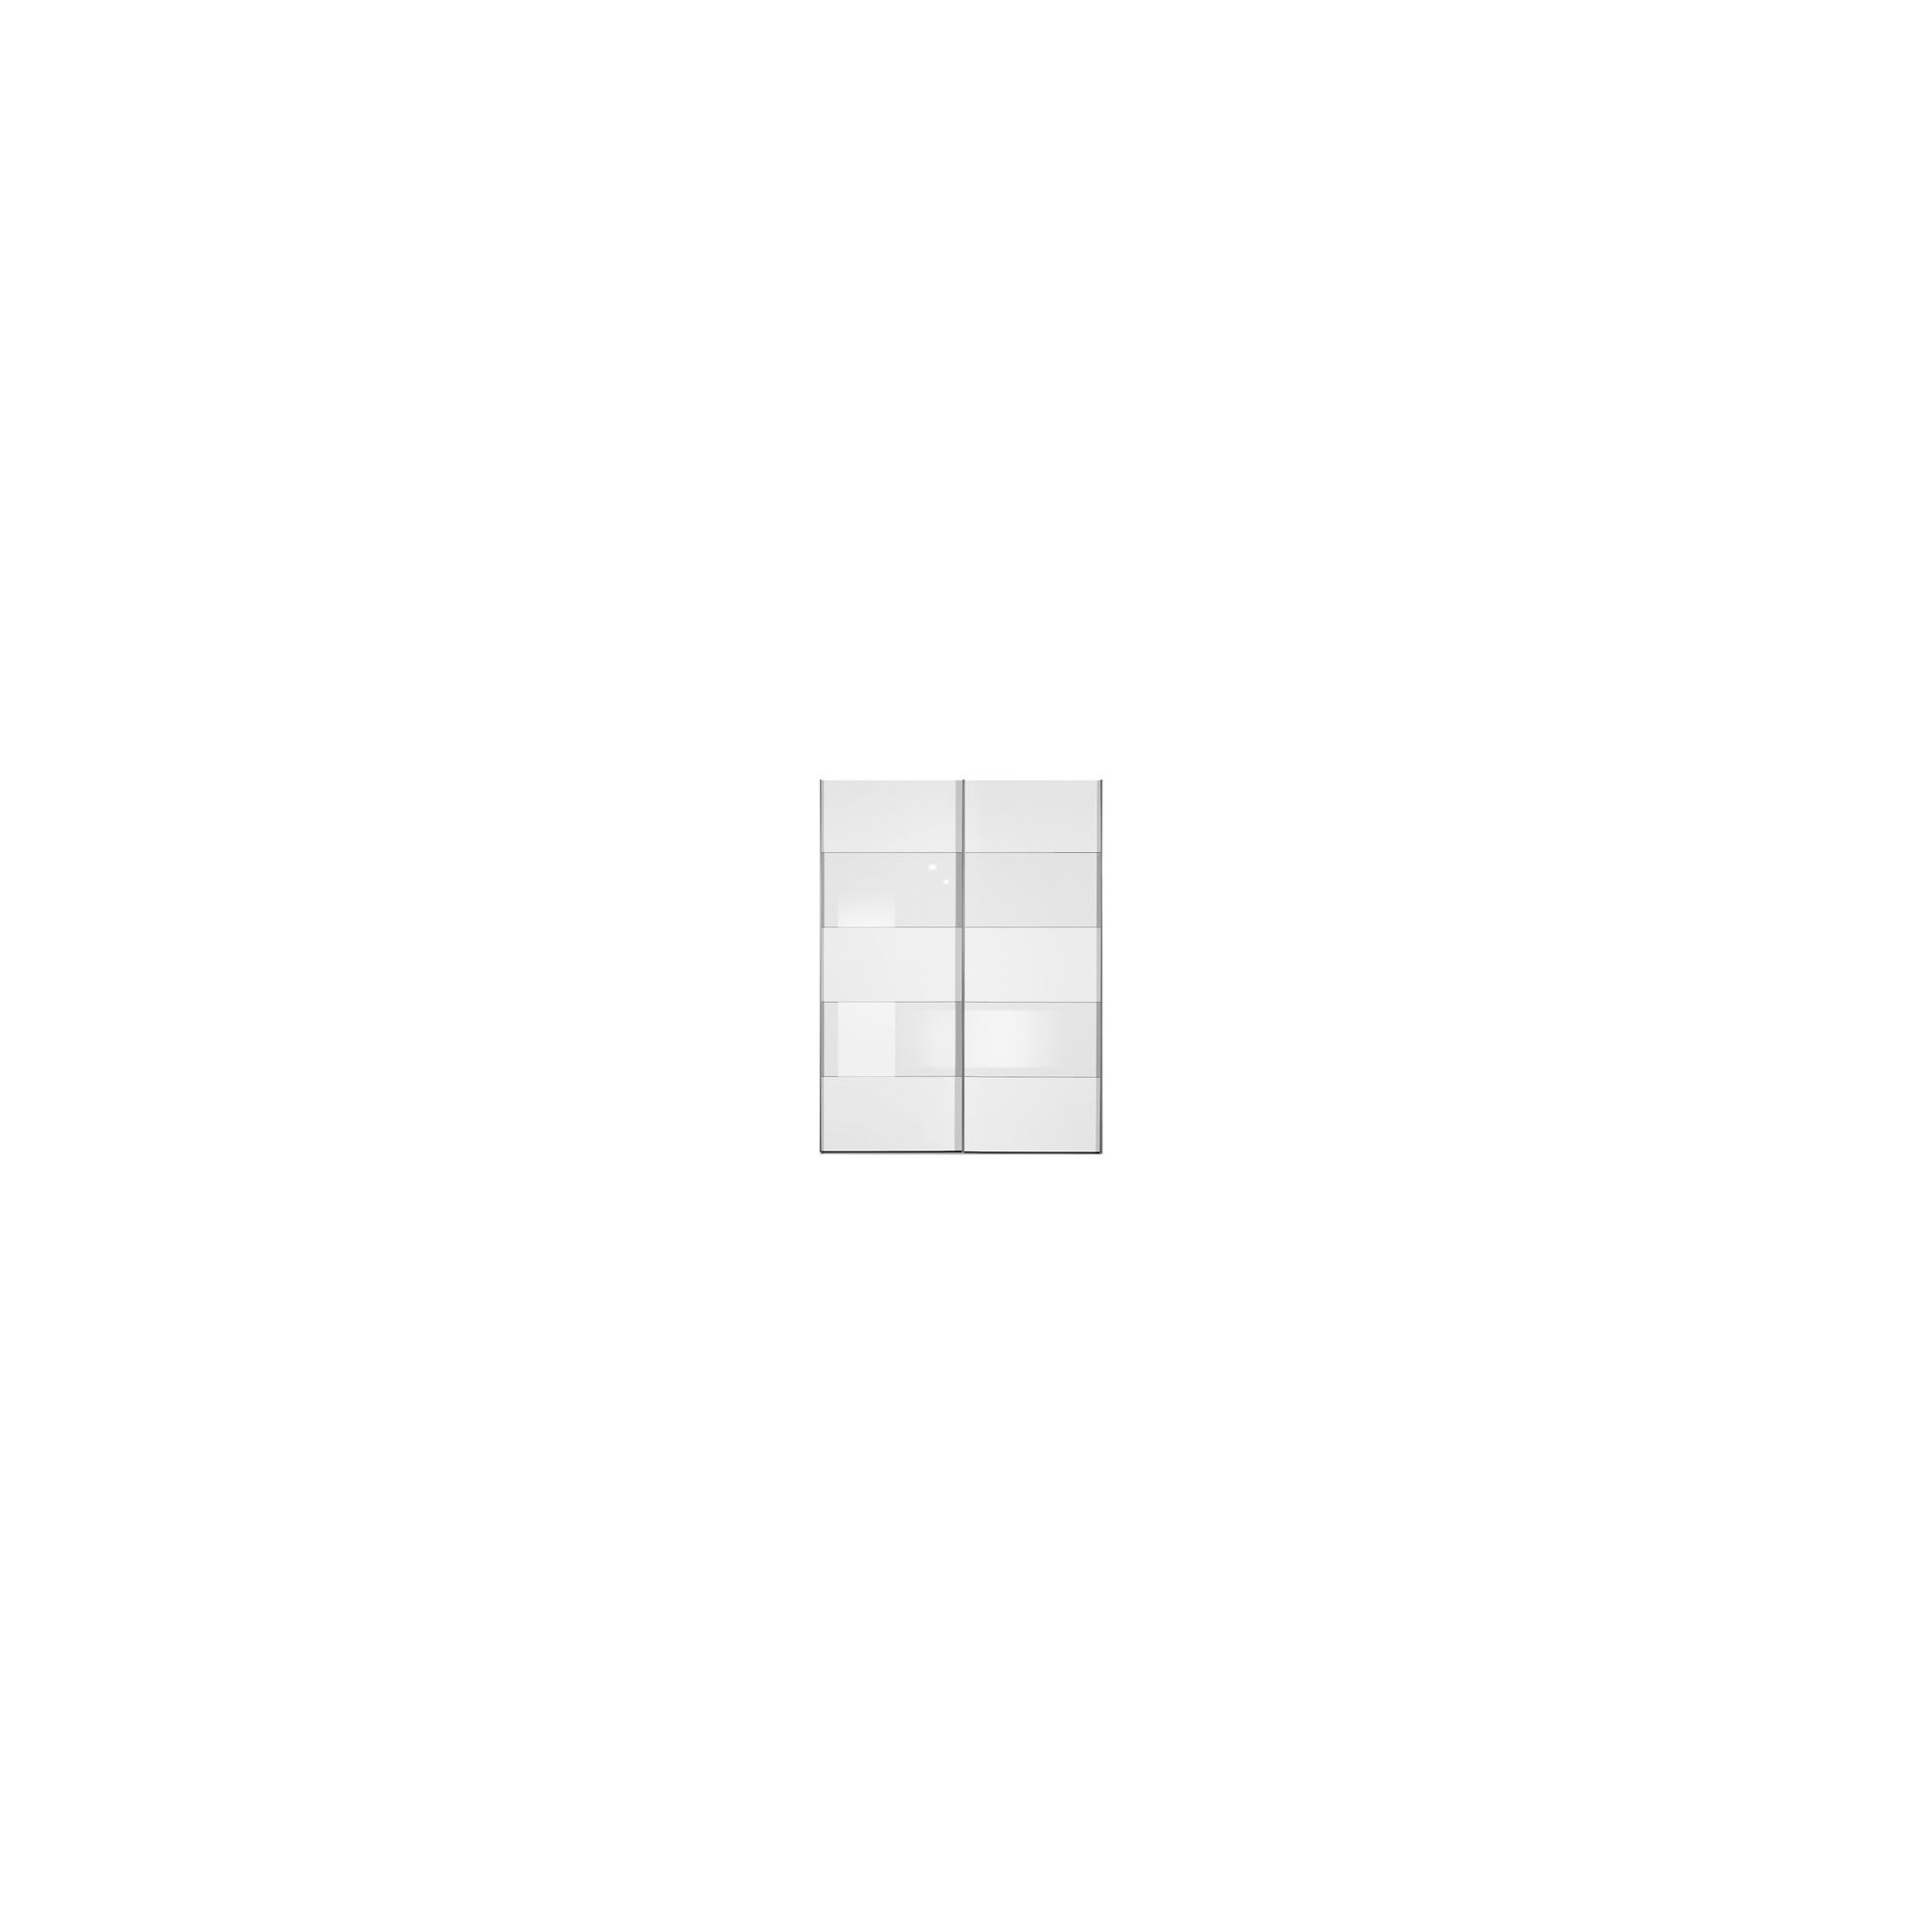 Arte-M Inline Sliding Door Wardrobe with Four Glass Panels - White / Black at Tescos Direct